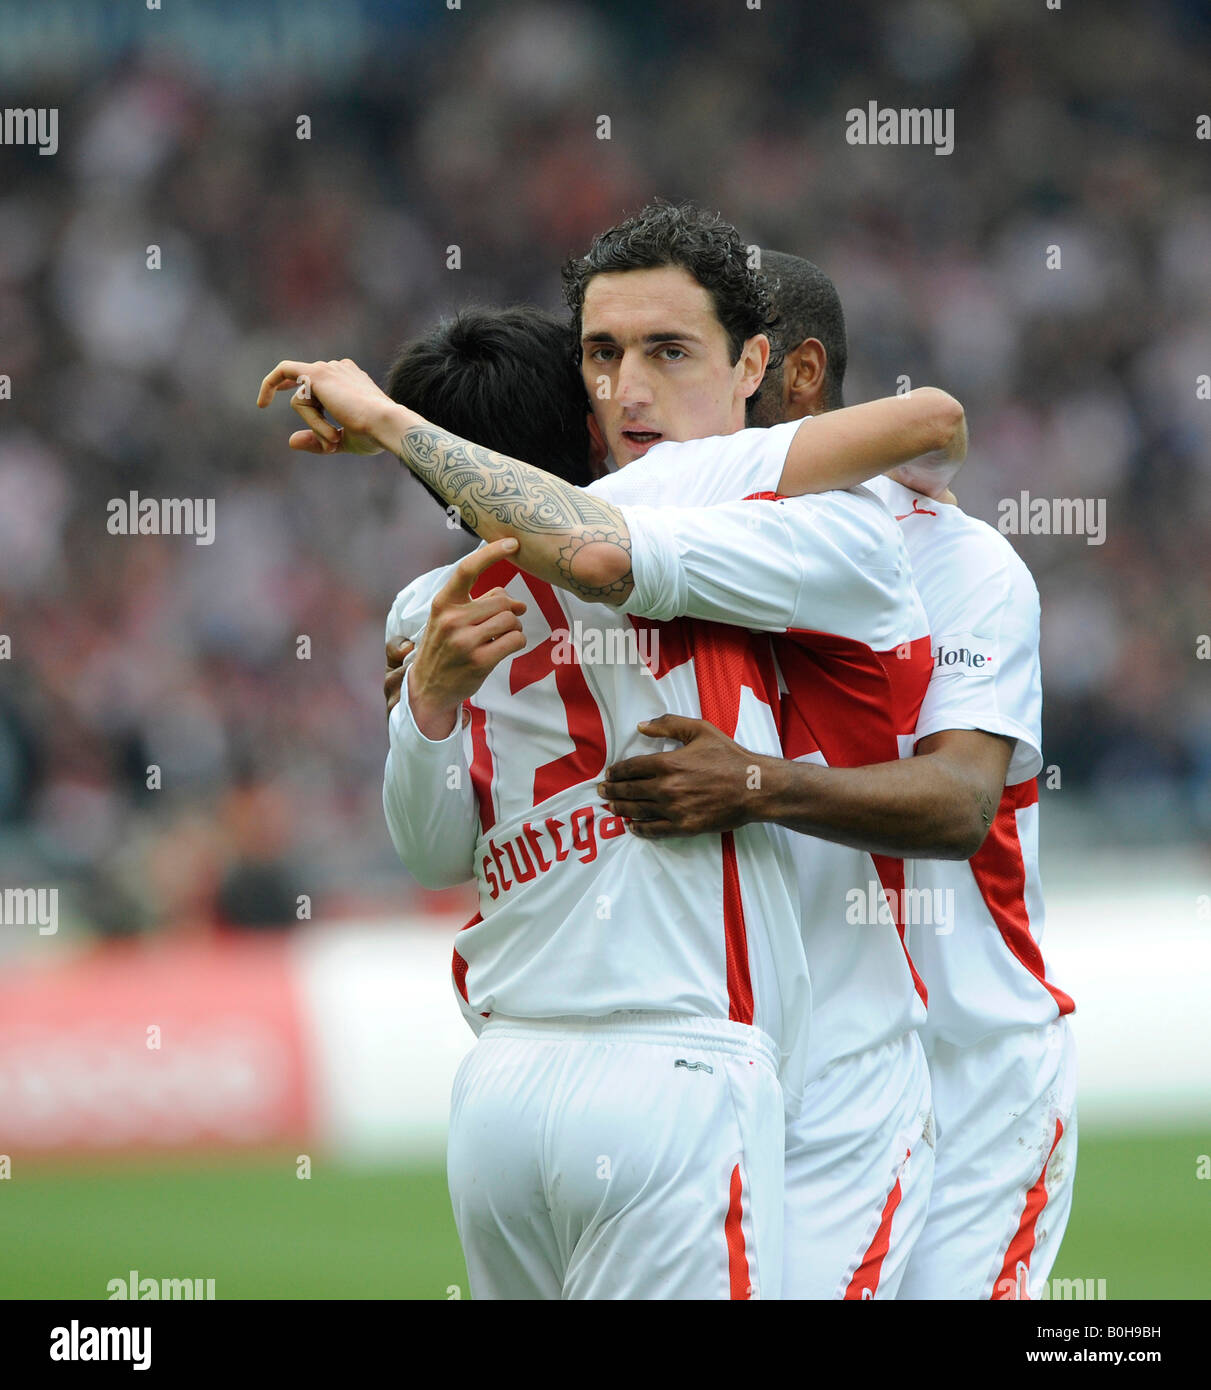 VfB Stuttgart football club players celebrating a goal, left to right: Pavel Pardo, Roberto Hilbert, Cacau and Yildiray - Stock Image